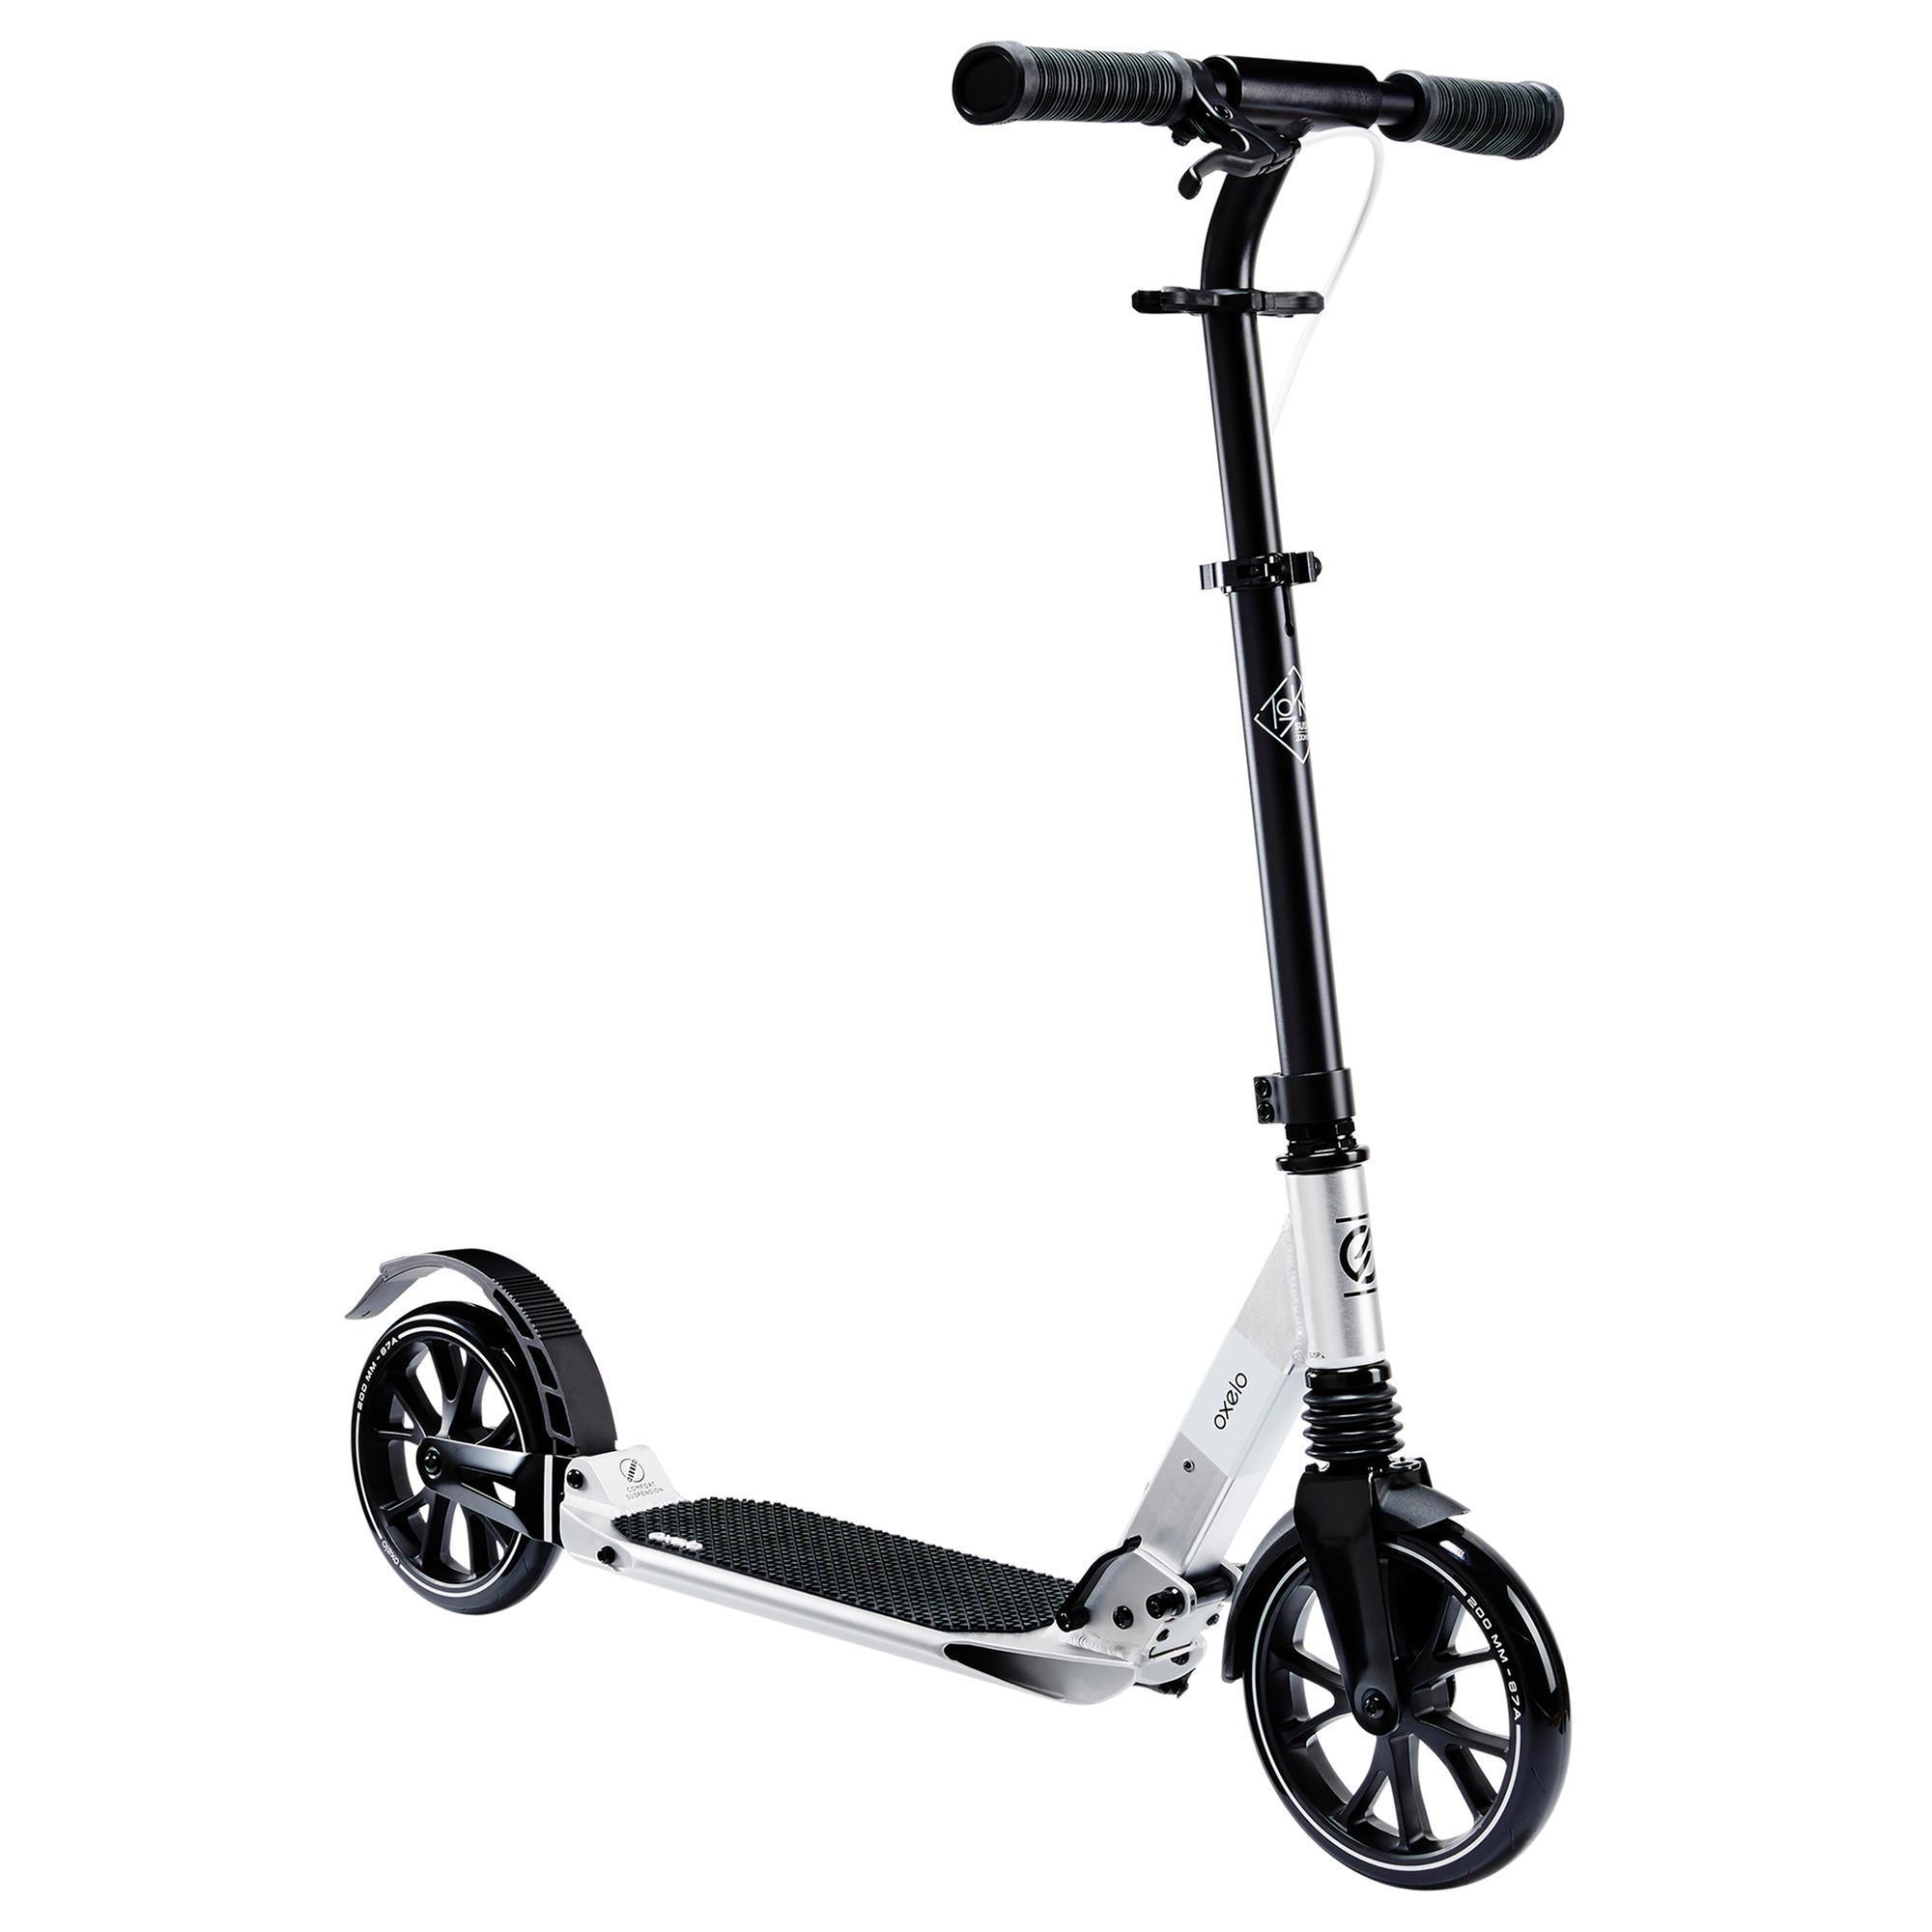 Ready scooter our products criticising write